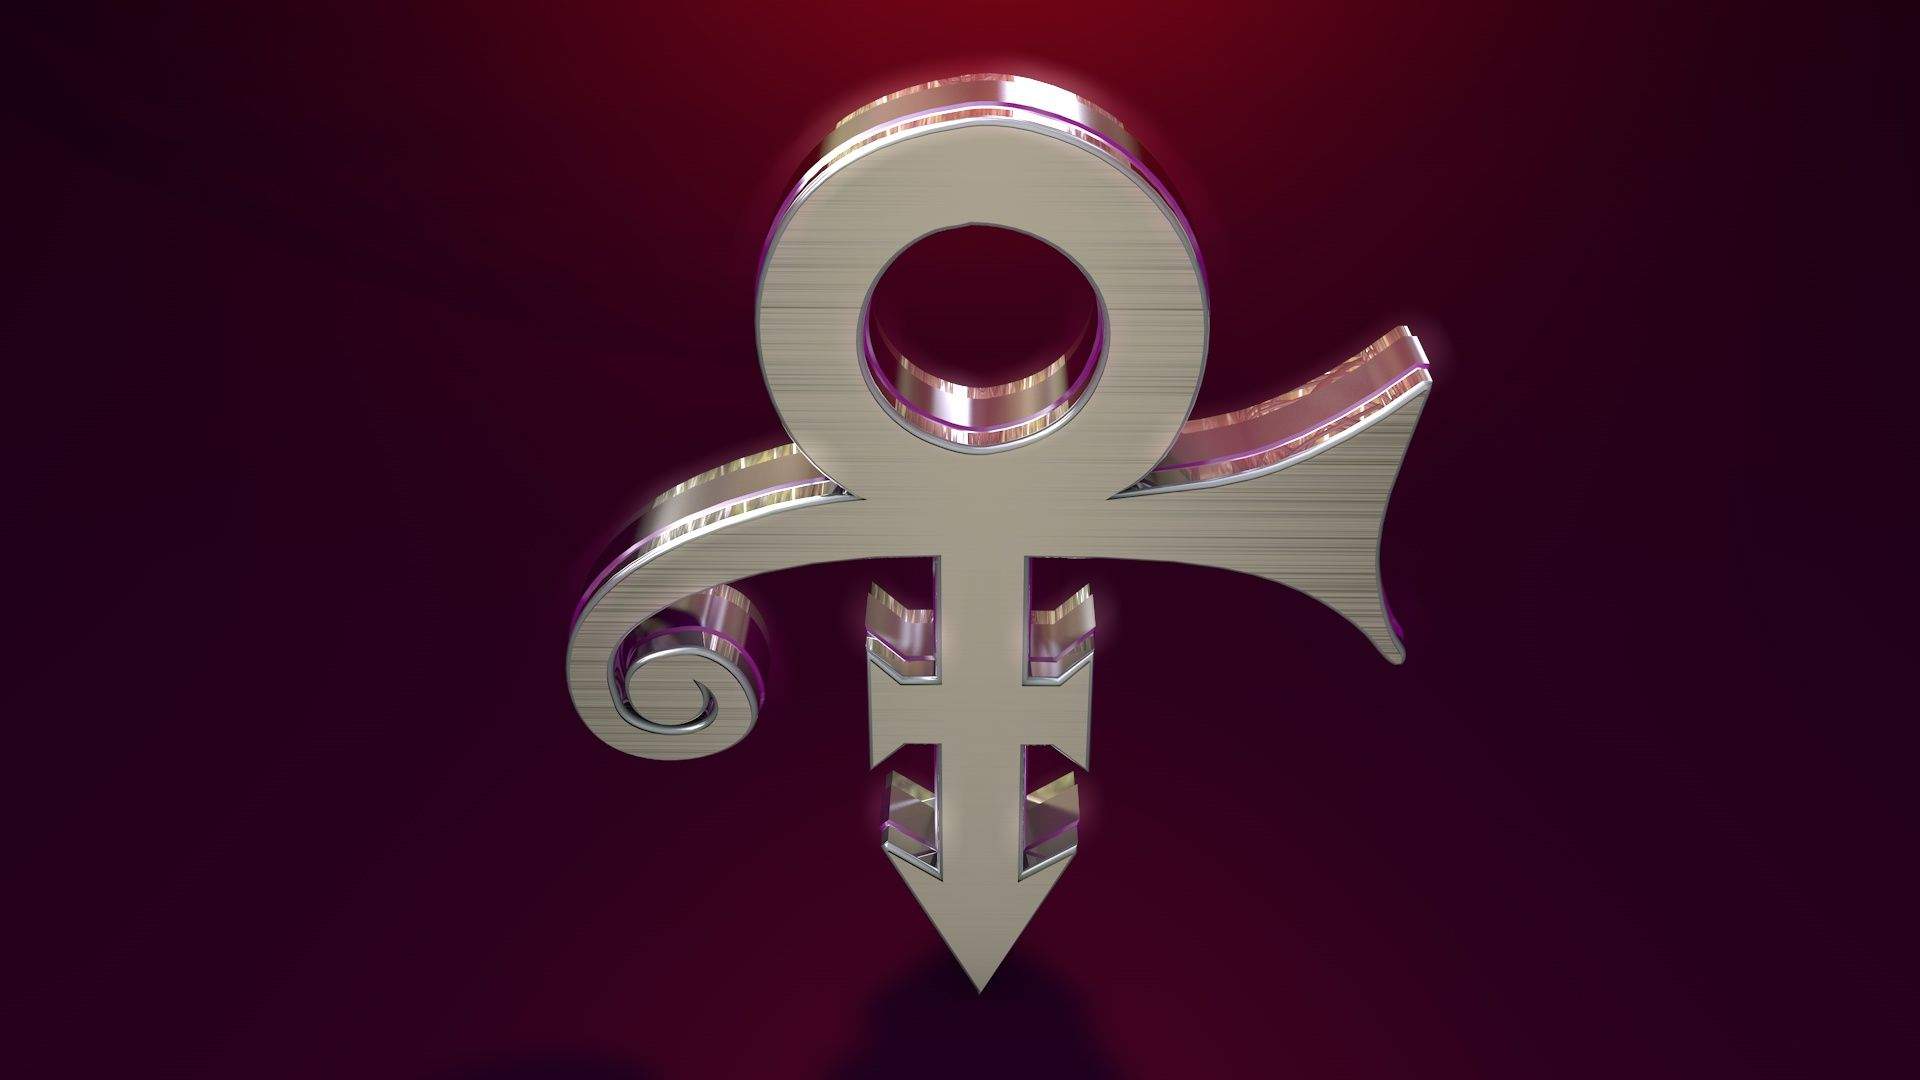 Prince Love Symbol Viewing Gallery For Prince Symbol Wallpaper